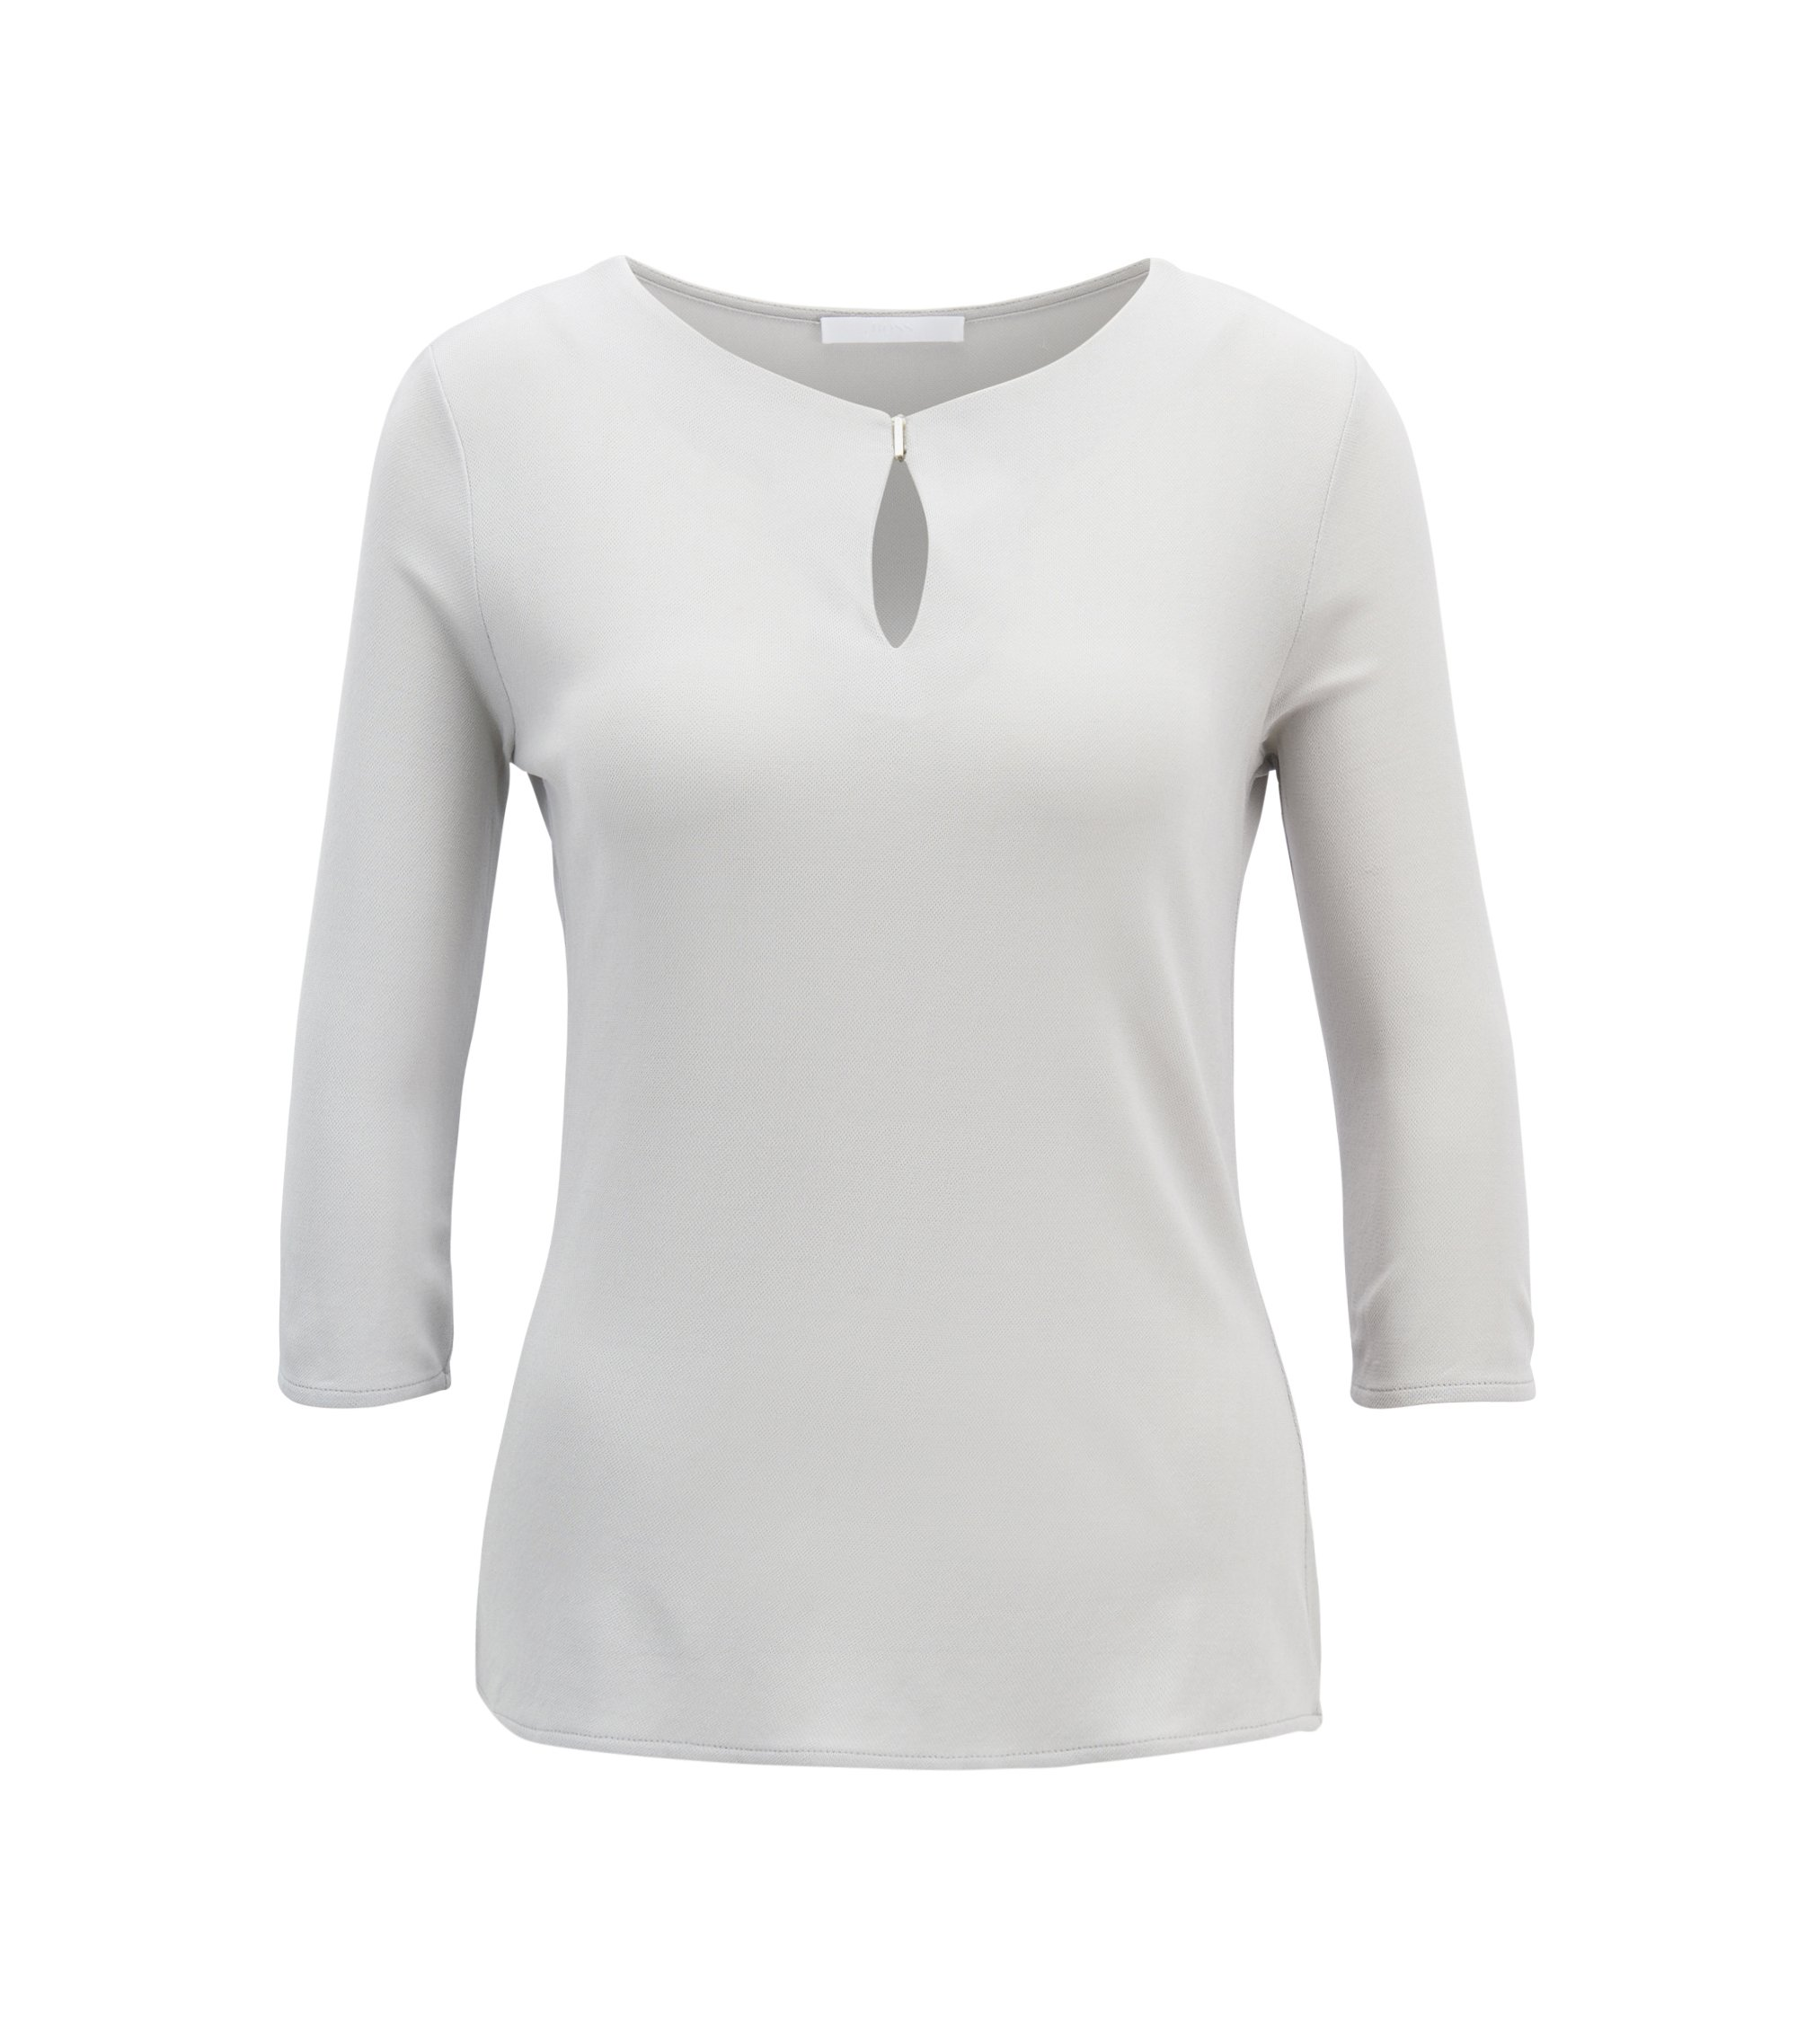 Regular-fit top in stretch crêpe jersey, Silver